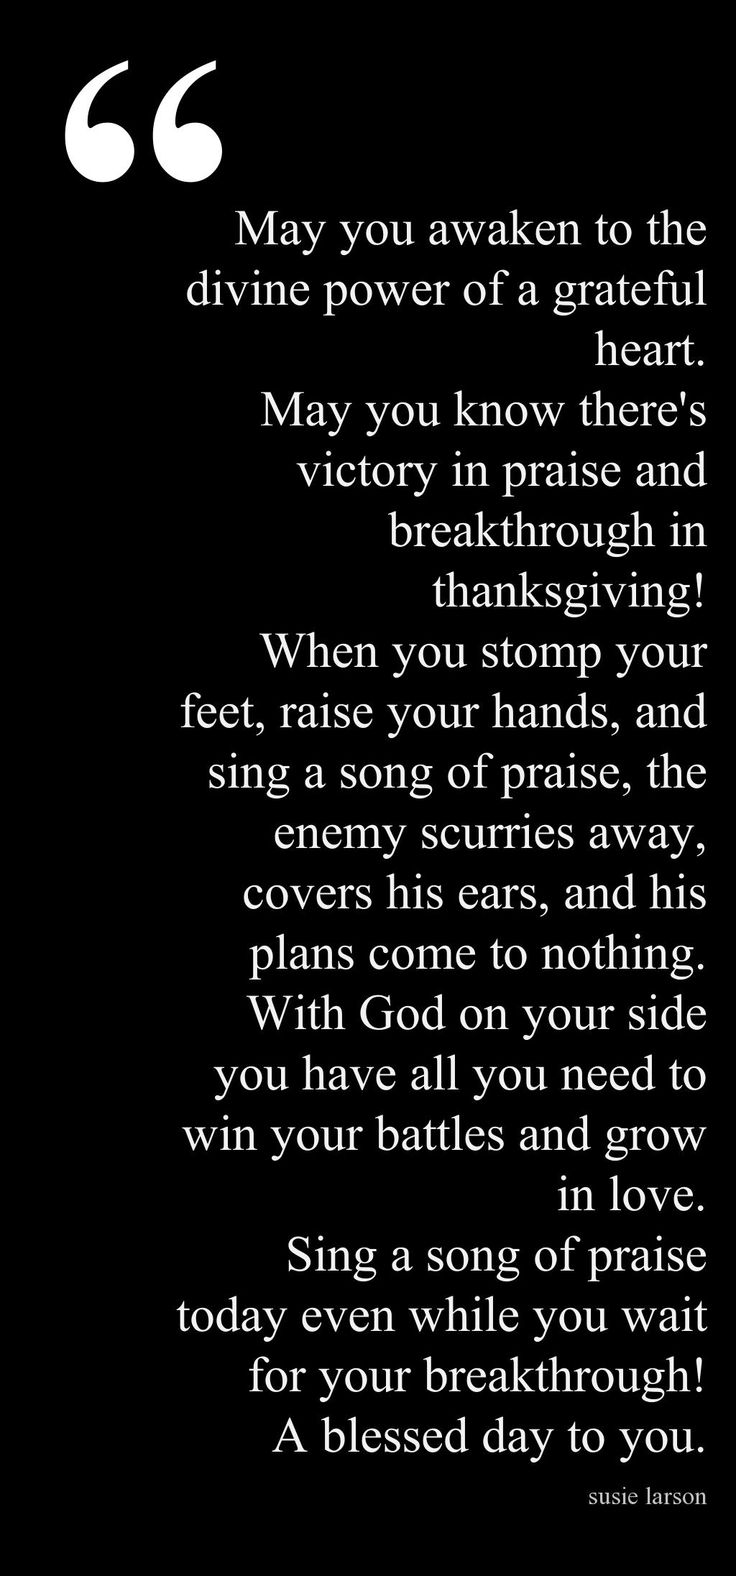 May you awaken to the divine power of a grateful heart.  May you know there's victory in praise and breakthrough in thanksgiving!  When you stomp your feet, raise your hands, and sing a song of praise, the enemy scurries away, covers his ears, and his plans come to nothing.  With God on your side you have all you need to win your battles and grown in love.    Susie Larson